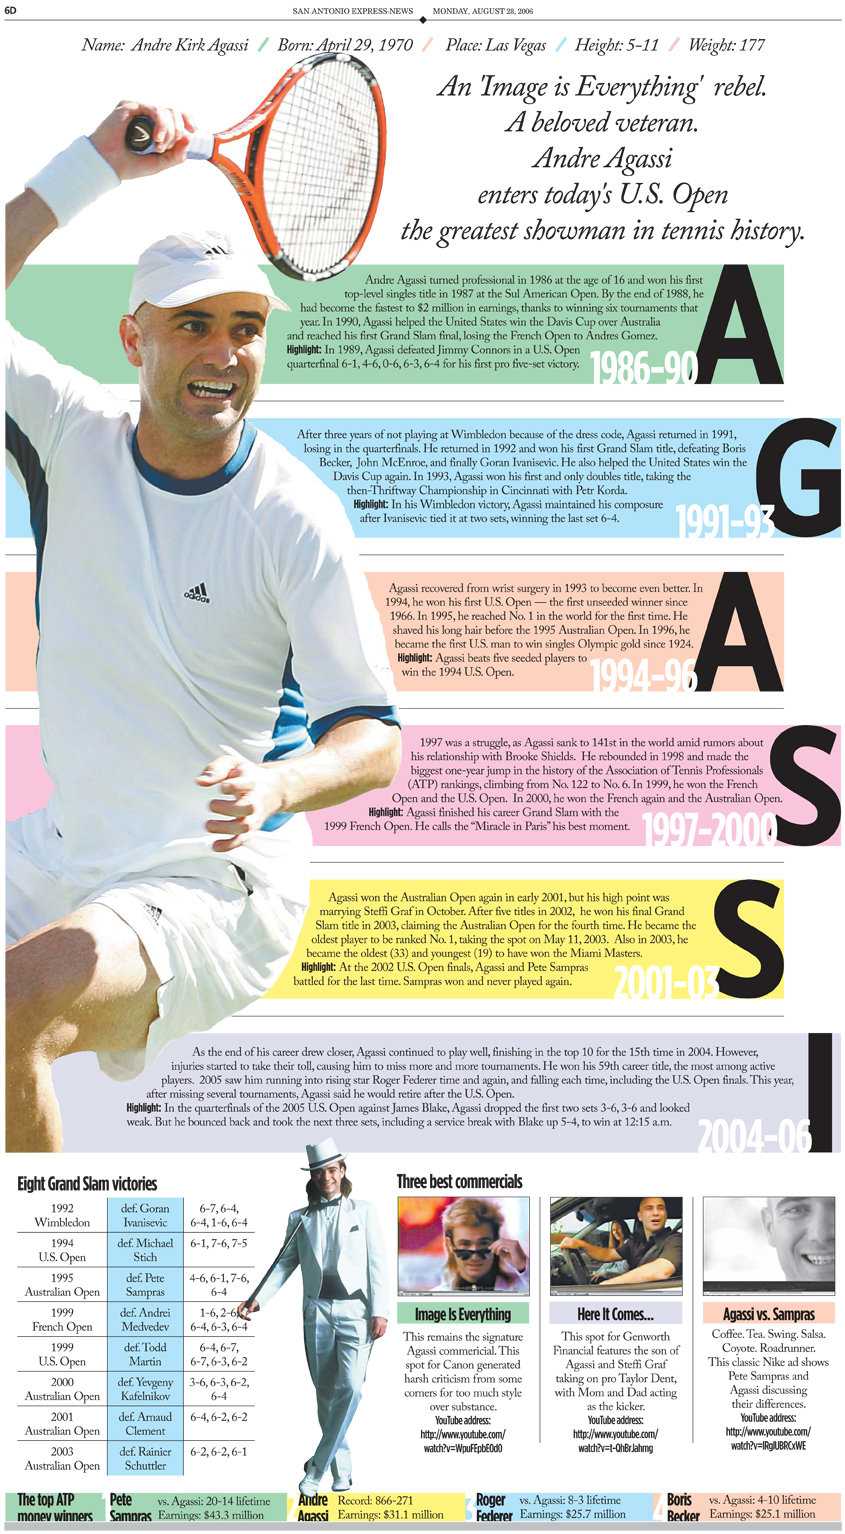 Andre Agassi - San Antonio Express-News